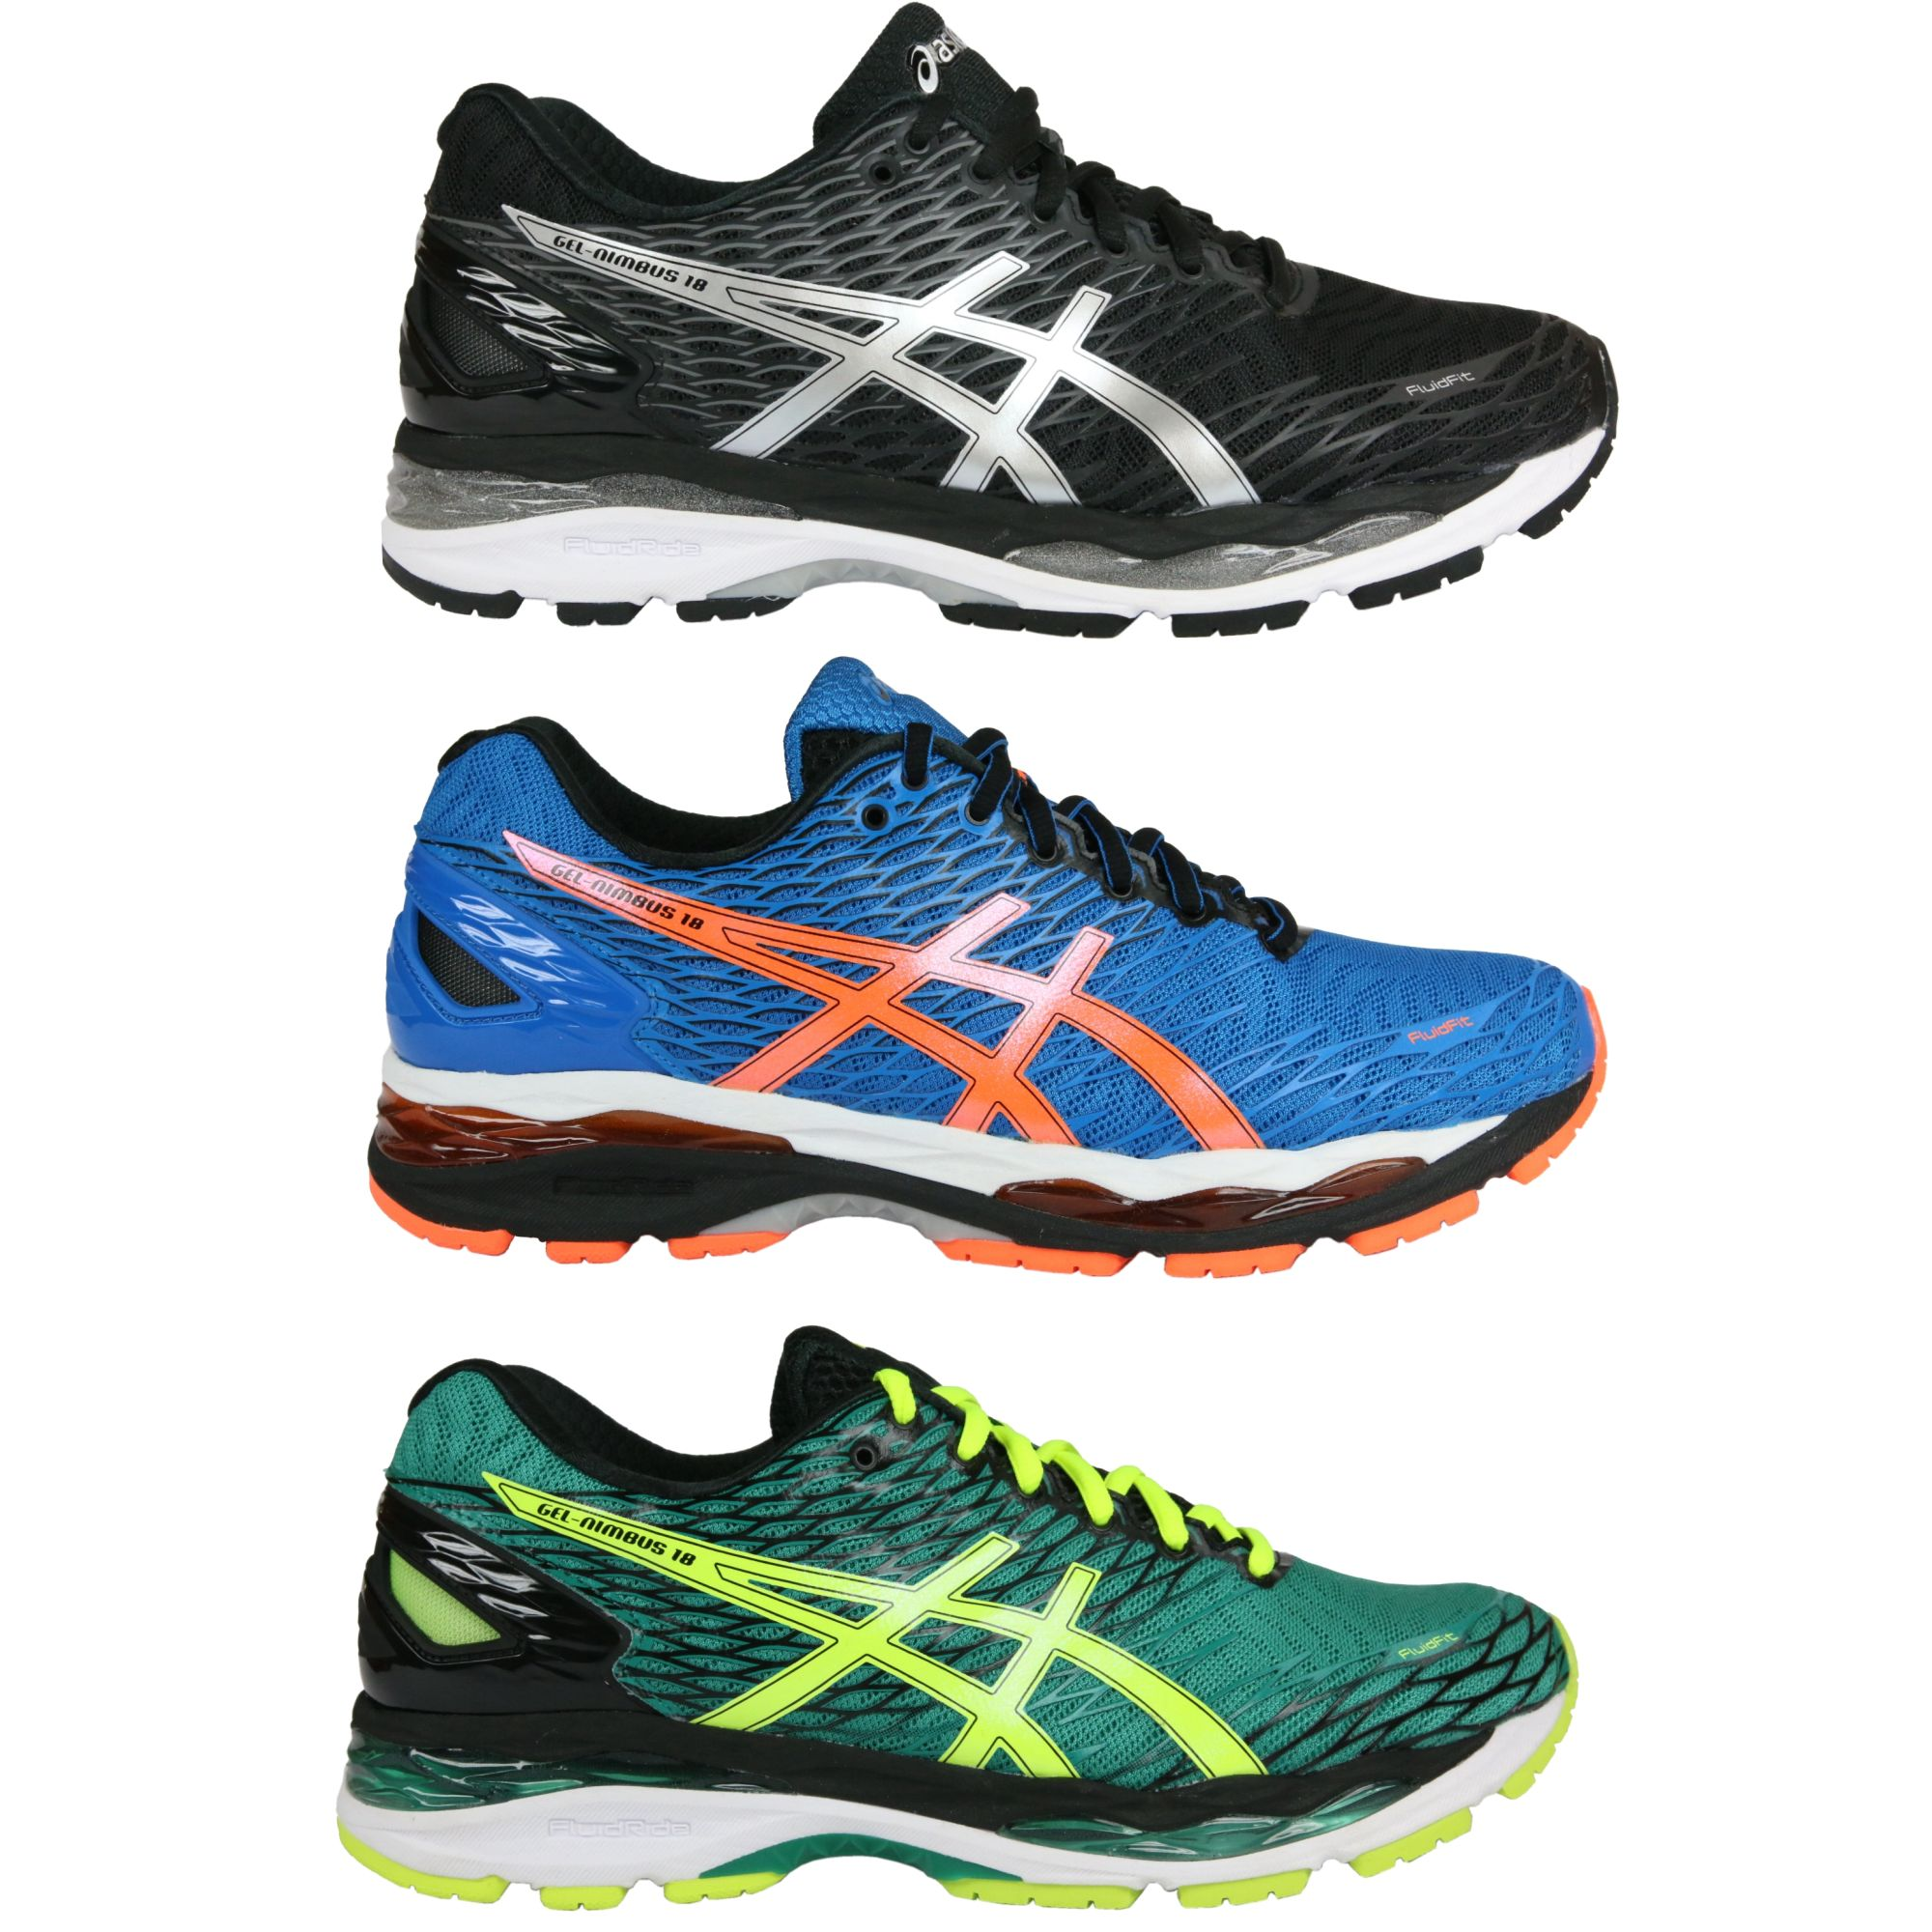 asics gel nimbus 18 schuhe laufschuhe joggingschuhe sportschuhe herren t600n ebay. Black Bedroom Furniture Sets. Home Design Ideas